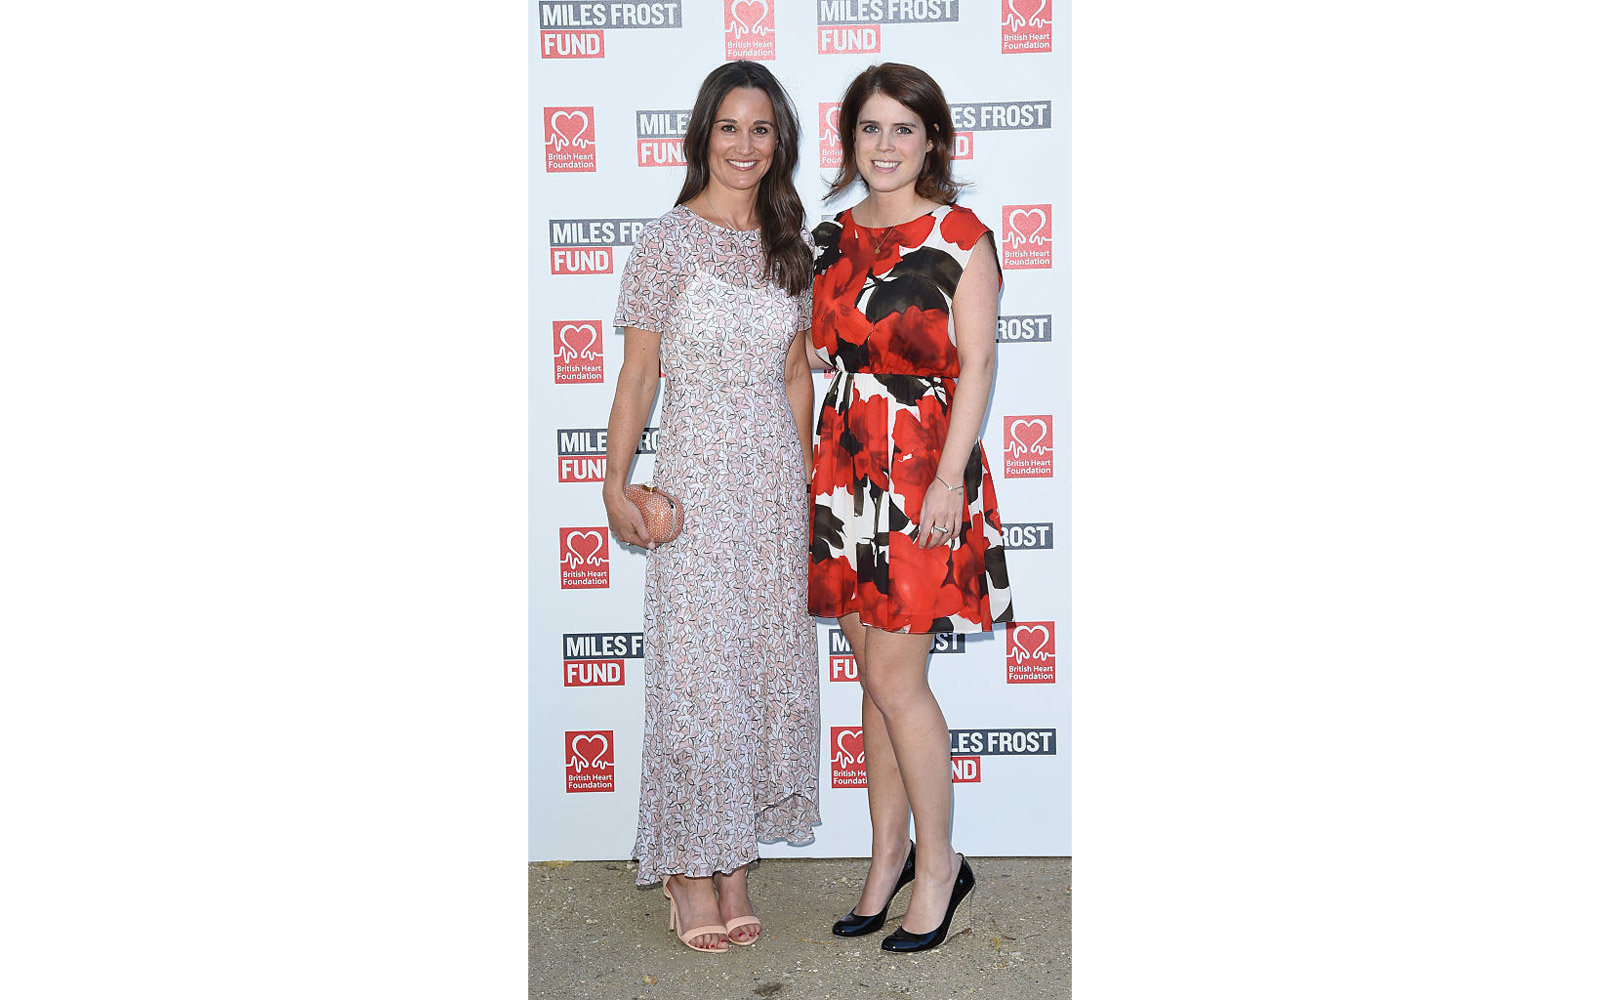 LONDON, ENGLAND - JULY 18:  Pippa Middleton and Princess Eugenie attend The Frost family final Summer Party to raise money for the Miles Frost Fund in partnership with the British Heart Foundation on July 18, 2016 in London, England.  (Photo by David M. B